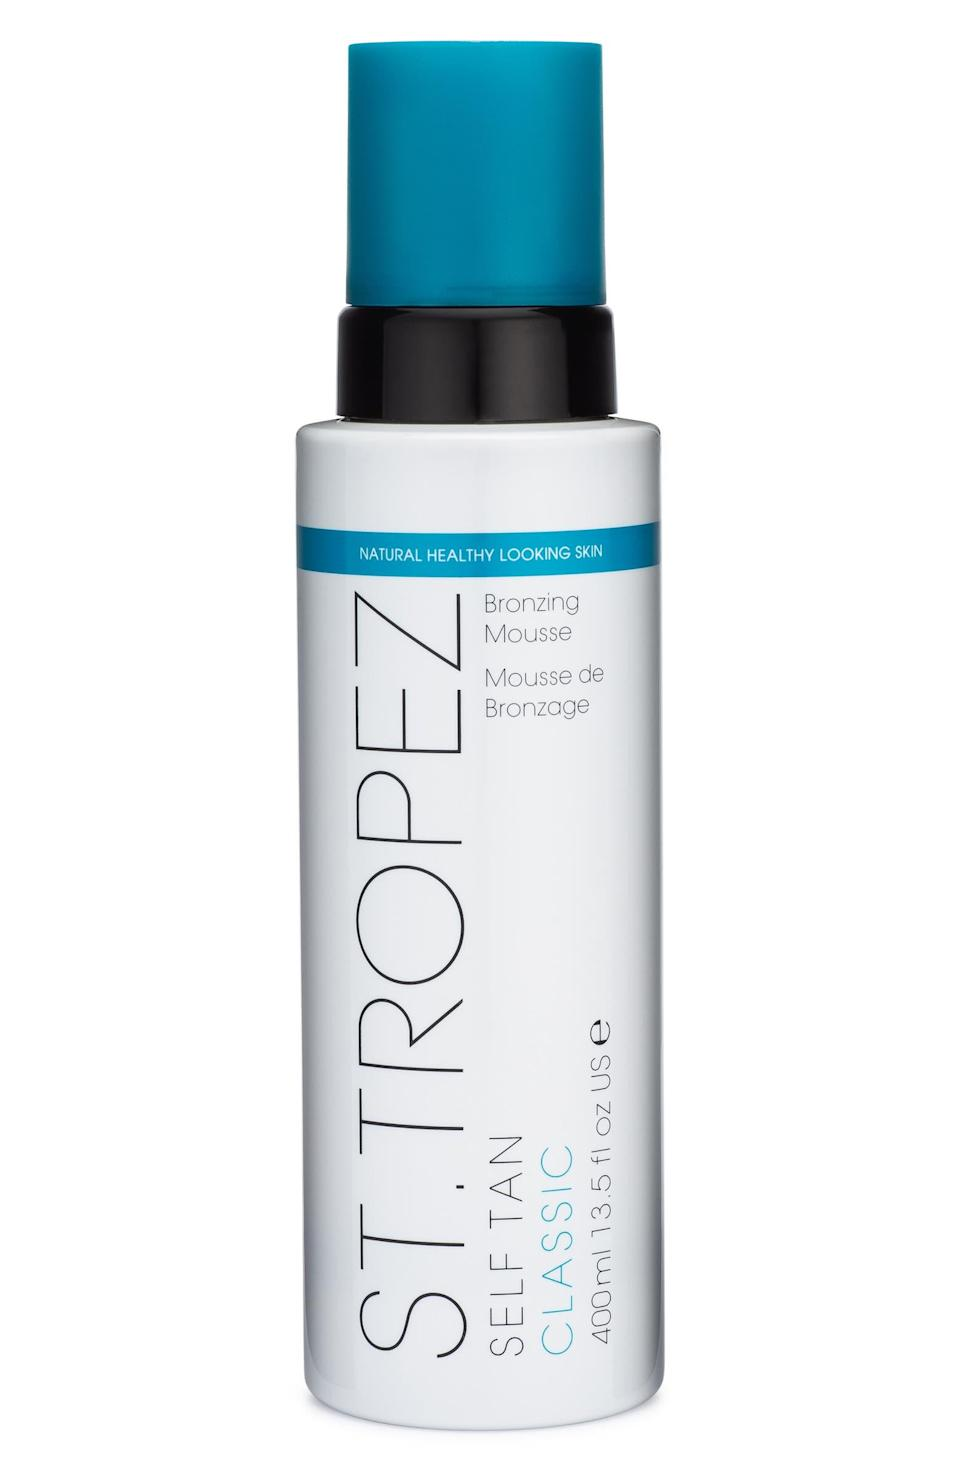 """<h2>St. Tropez Jumbo Self Tan Classic Bronzing Mousse 43% Off<br></h2><br>""""I have reached an age where I am no longer willing to risk wrinkles for a tan — and that's where this value-priced St. Tropez comes into play. I've been using this brand's self-tanner since my school days and it's still my trusted favorite for a streak-free, subtle glow that many mistake for the real deal."""" <em>– Elizabeth Buxton, Deputy Director</em><br><br><strong><em>Next Best Deal:</em></strong><em> Since St. Tropez Jumpo Self-Tan Classic Bronzing Mousse is sold out, try this still-in-stock <a href=""""https://www.nordstrom.com/s/coola-suncare-full-spectrum-360-sunscreen-set-76-value/5578205"""" rel=""""nofollow noopener"""" target=""""_blank"""" data-ylk=""""slk:COOLA Suncare Full Spectrum 360° Sunscreen Set"""" class=""""link rapid-noclick-resp"""">COOLA Suncare Full Spectrum 360° Sunscreen Set</a> instead!</em> <br><br><em>Shop <strong><a href=""""https://www.nordstrom.com/brands/st-tropez--6855"""" rel=""""nofollow noopener"""" target=""""_blank"""" data-ylk=""""slk:St. Tropez"""" class=""""link rapid-noclick-resp"""">St. Tropez</a></strong></em><br><br><strong>St. Tropez</strong> Jumbo Self Tan Classic Bronzing Mousse, $, available at <a href=""""https://go.skimresources.com/?id=30283X879131&url=https%3A%2F%2Fwww.nordstrom.com%2Fs%2Fst-tropez-jumbo-self-tan-classic-bronzing-mousse-80-value%2F5271918"""" rel=""""nofollow noopener"""" target=""""_blank"""" data-ylk=""""slk:Nordstrom"""" class=""""link rapid-noclick-resp"""">Nordstrom</a>"""